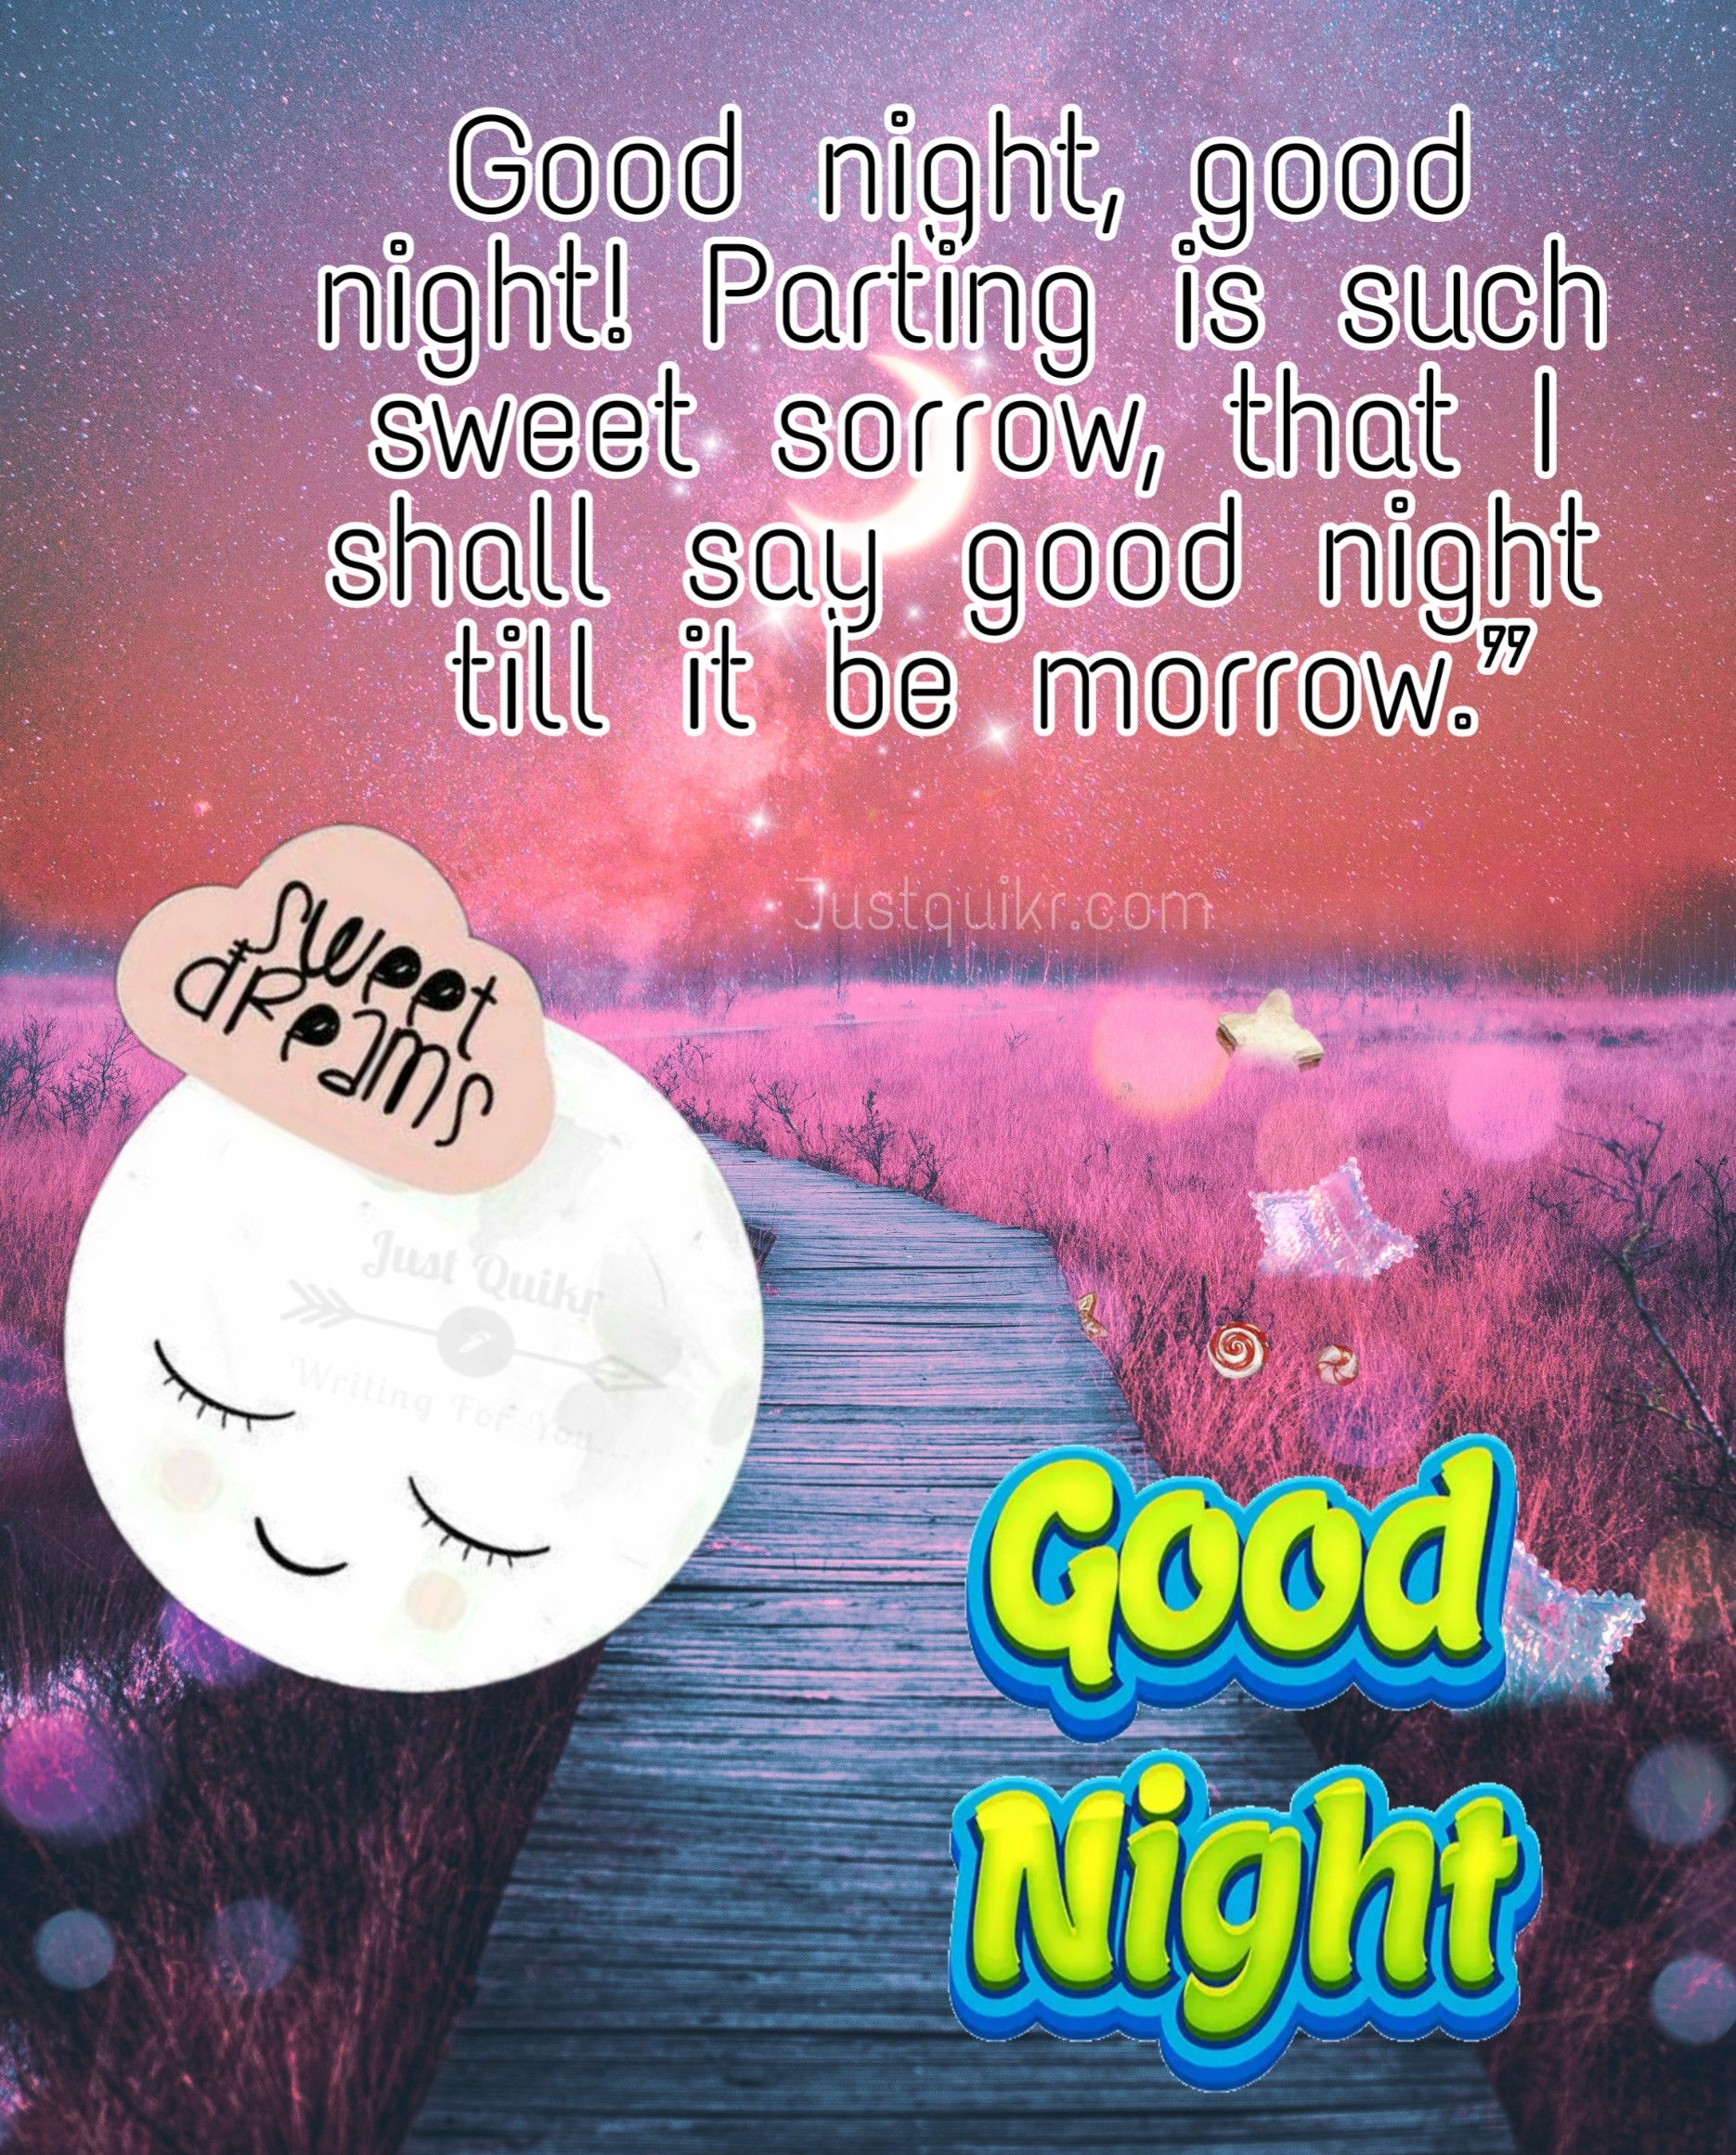 Good Night HD Pics Images For Family